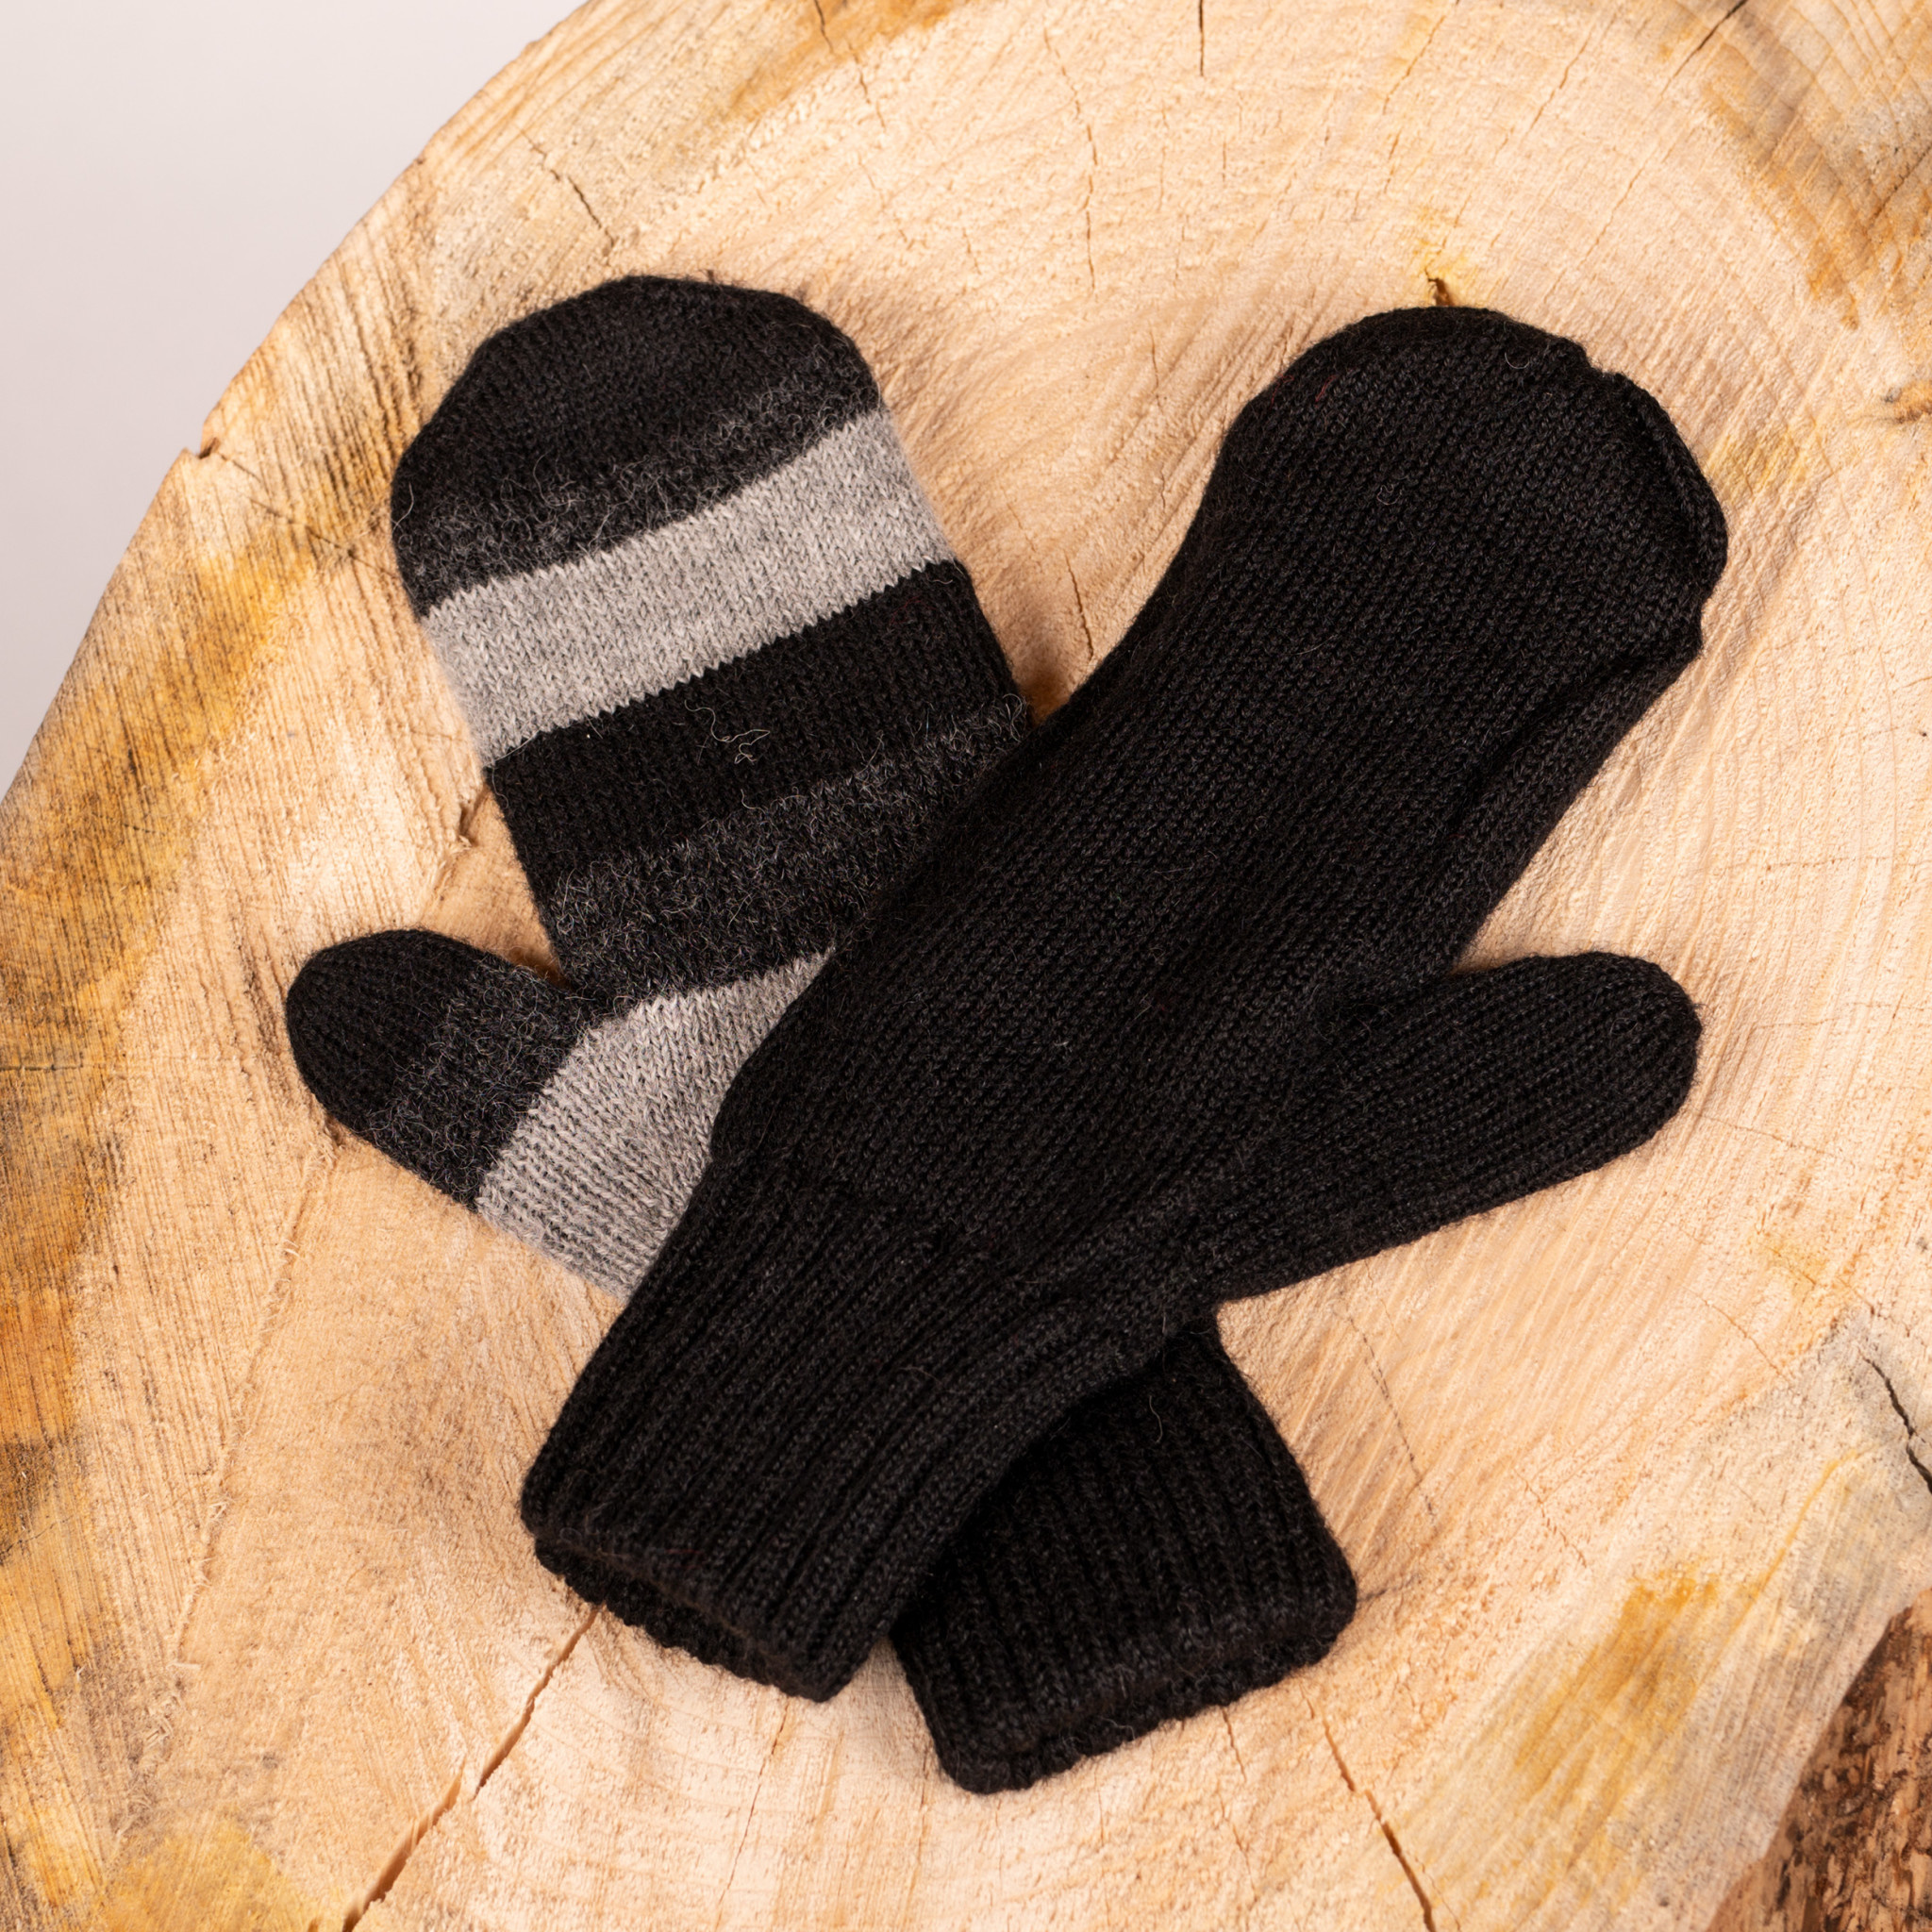 Alpaca DNA Double and reversible Black Distinction mittens 100% Alpaca wool